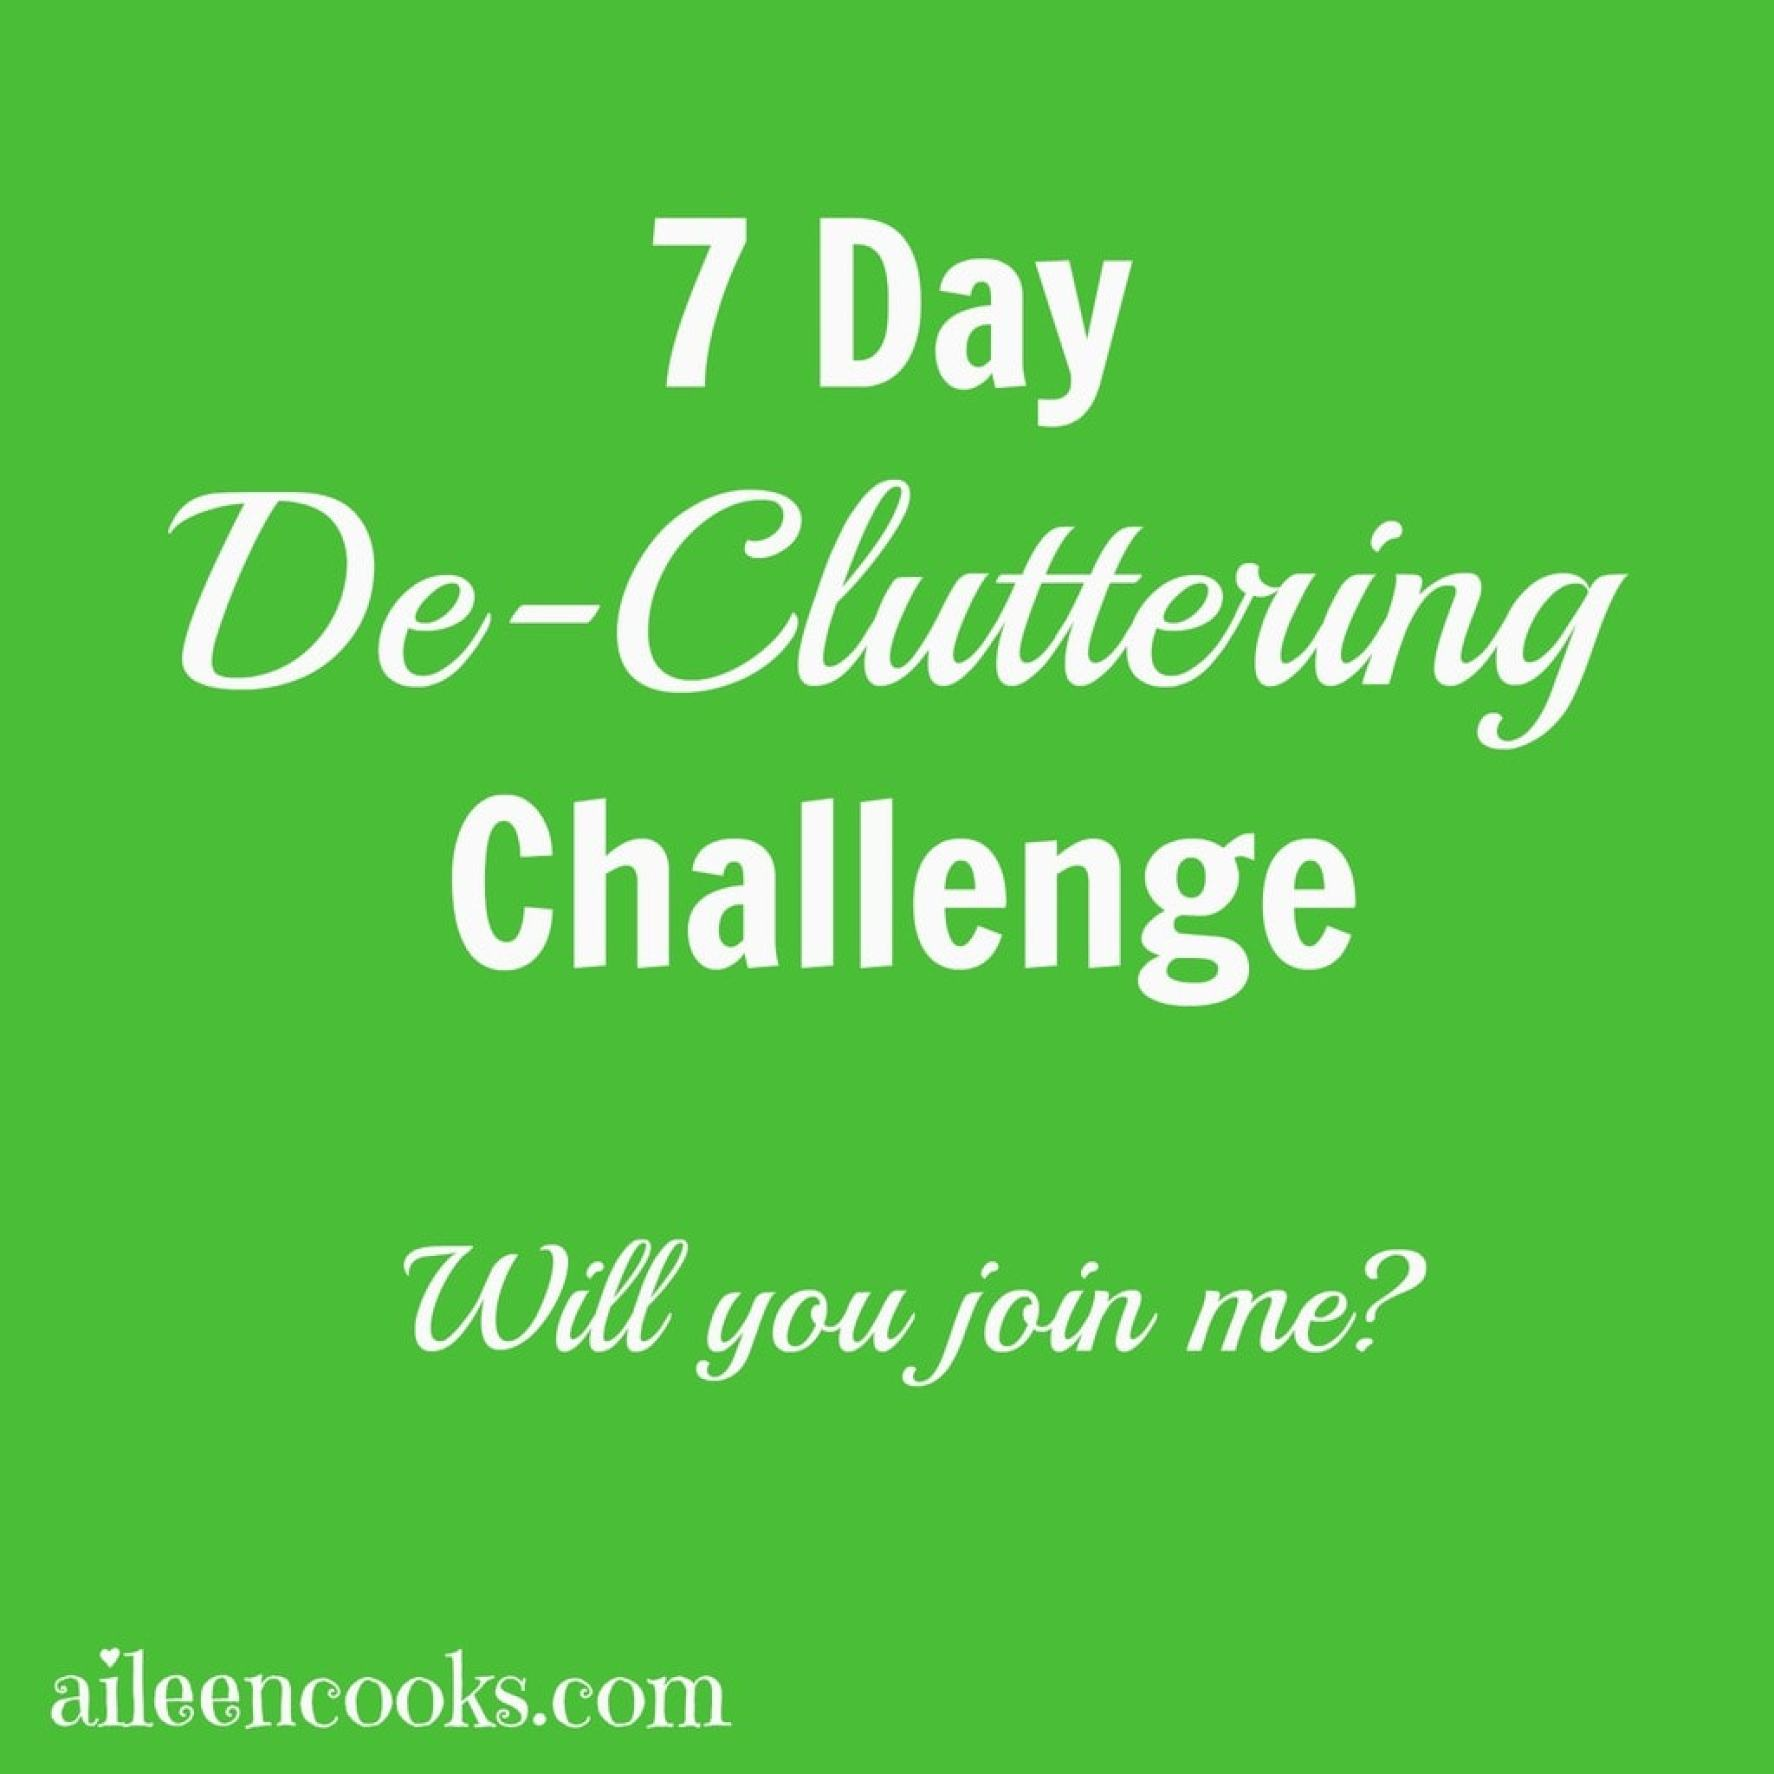 7 Day De-Cluttering Challenge Will you join me. Let's Do some spring cleaning together! http://aileencooks.com